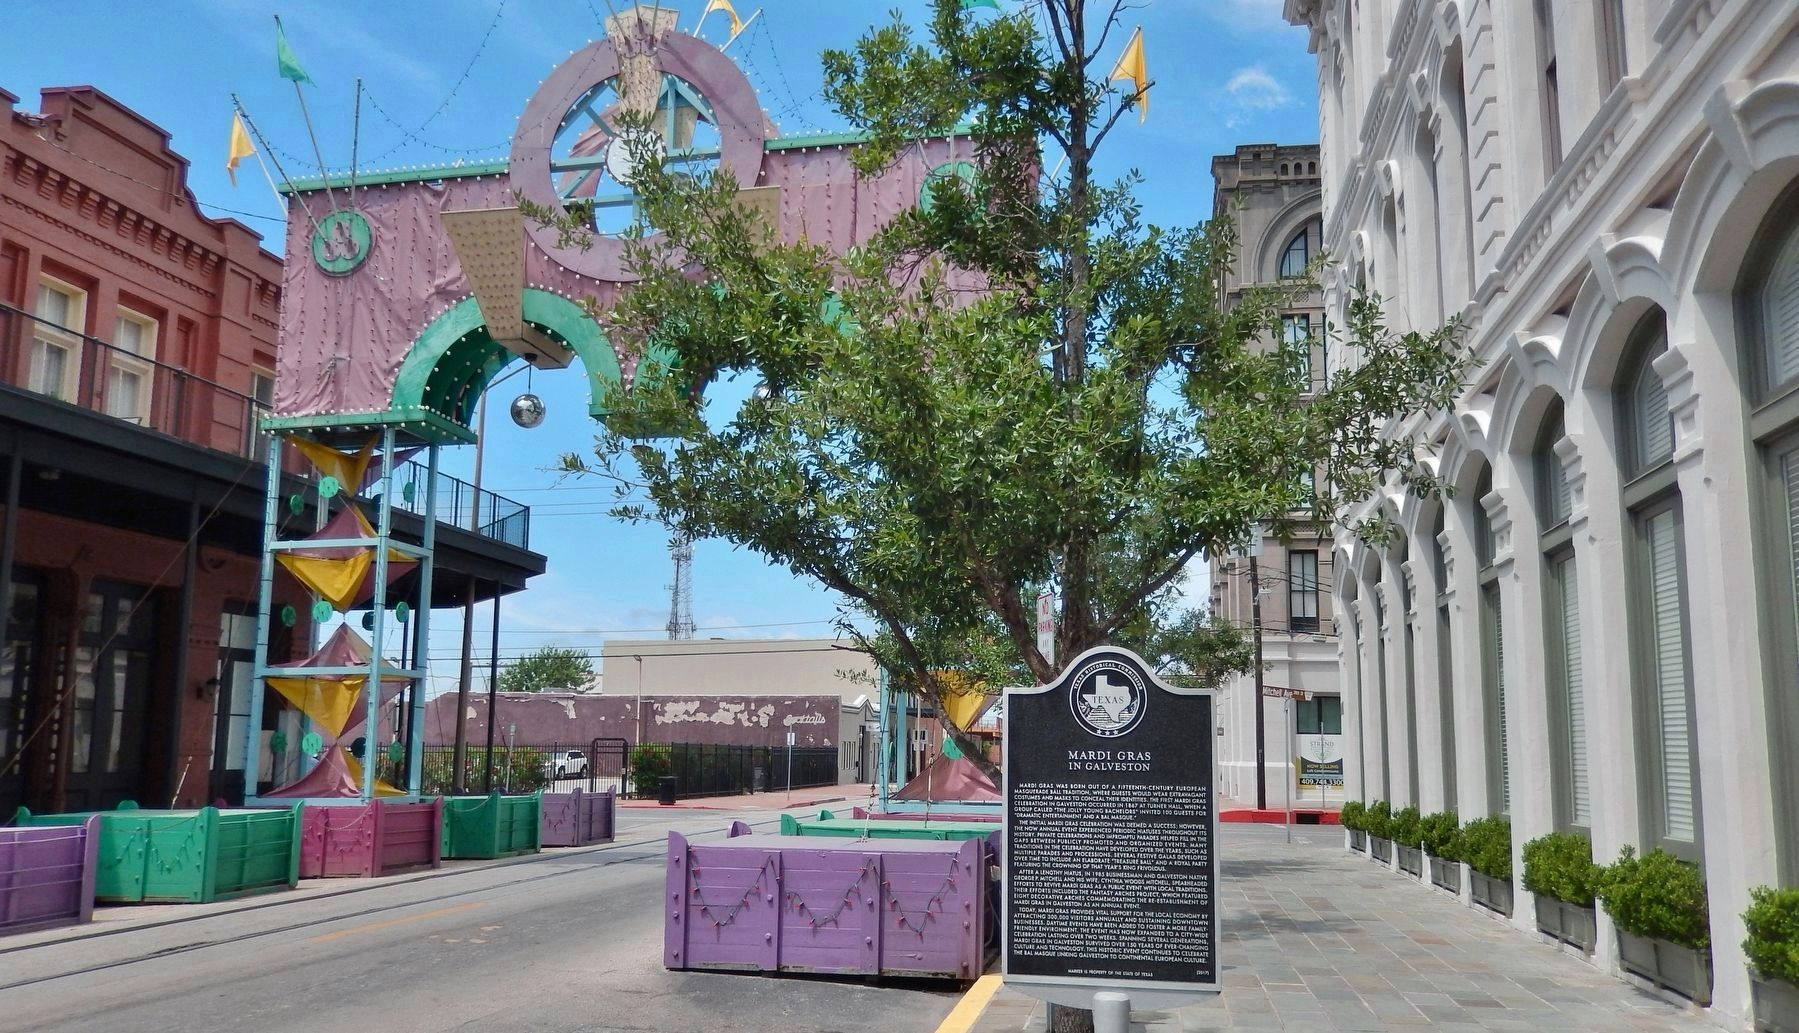 Mardi Gras in Galveston Marker (<i>wide view; showing Mardi Gras Arch in street at left</i>) image. Click for full size.